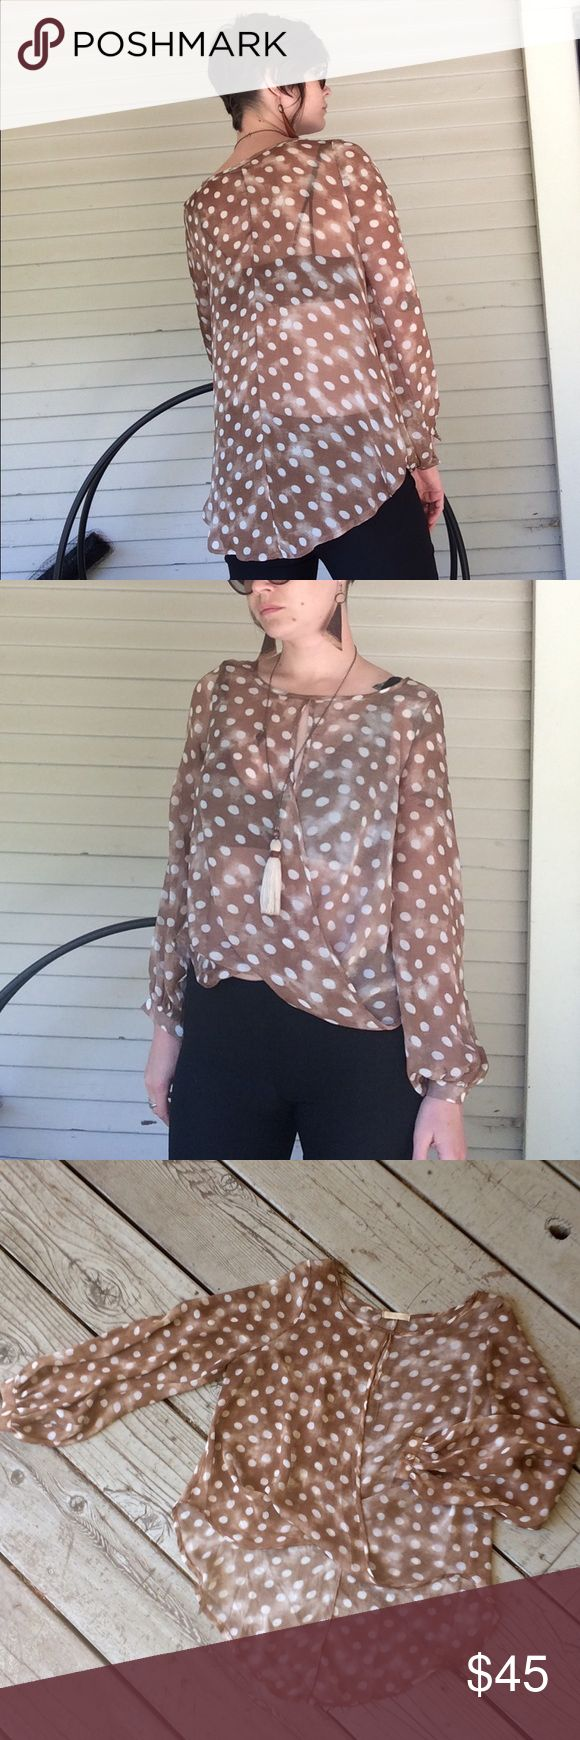 Sheer polka-dot high low top Long sleeved flowy polka dot top with cross over front and billowing sleeves.  Great with a cami or a pretty bra underneath. M.Fredric Tops Blouses